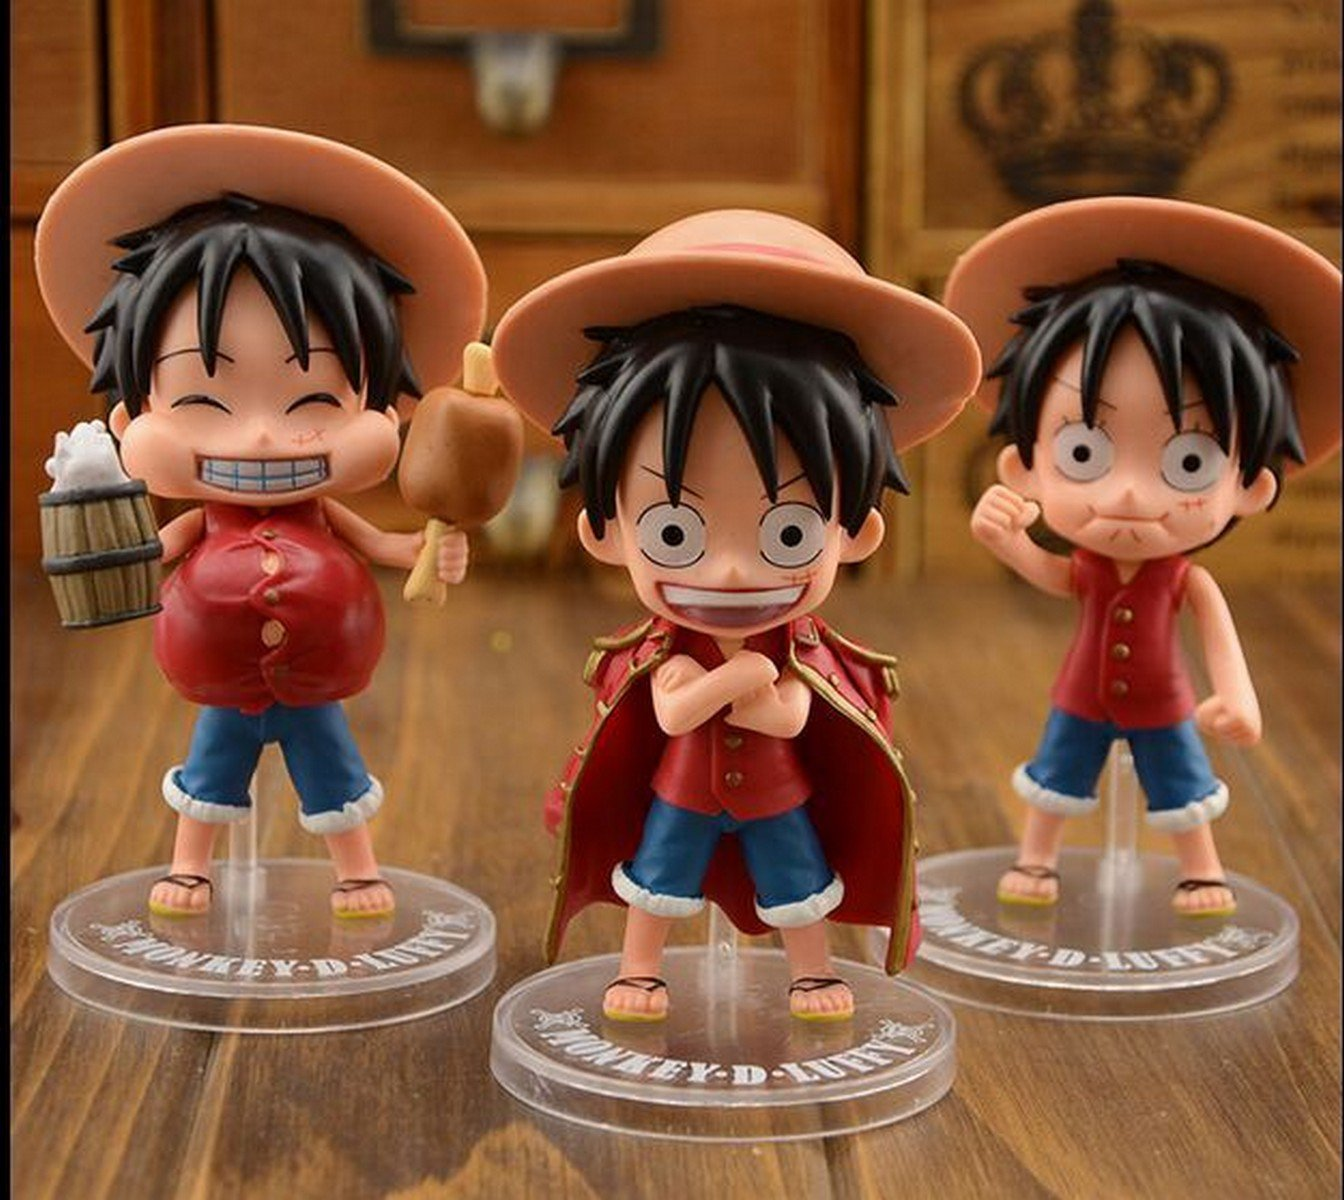 Buy 3Pcslot One Piece Anime Cute Figure doll Ornaments Pirate Era of King Luffy Empty Island Papers